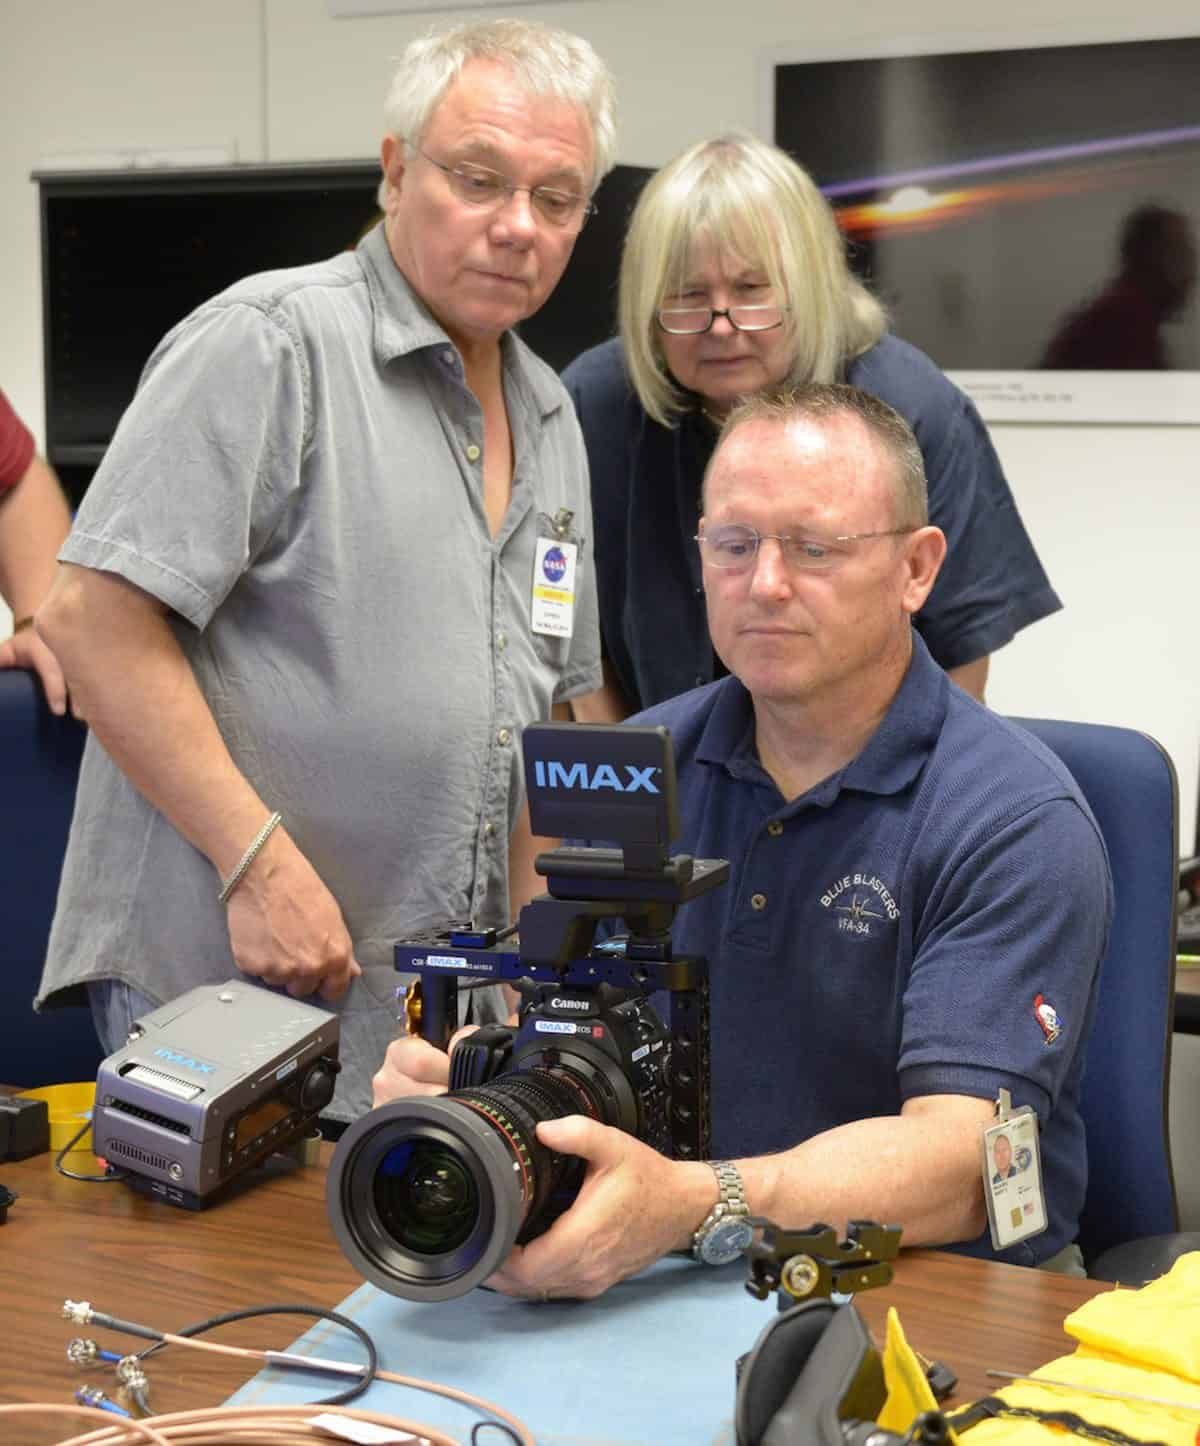 Training... James Neihouse ASC and director Toni Myers show astronaut Butch Wilmore the Codex recorder and Canon C500